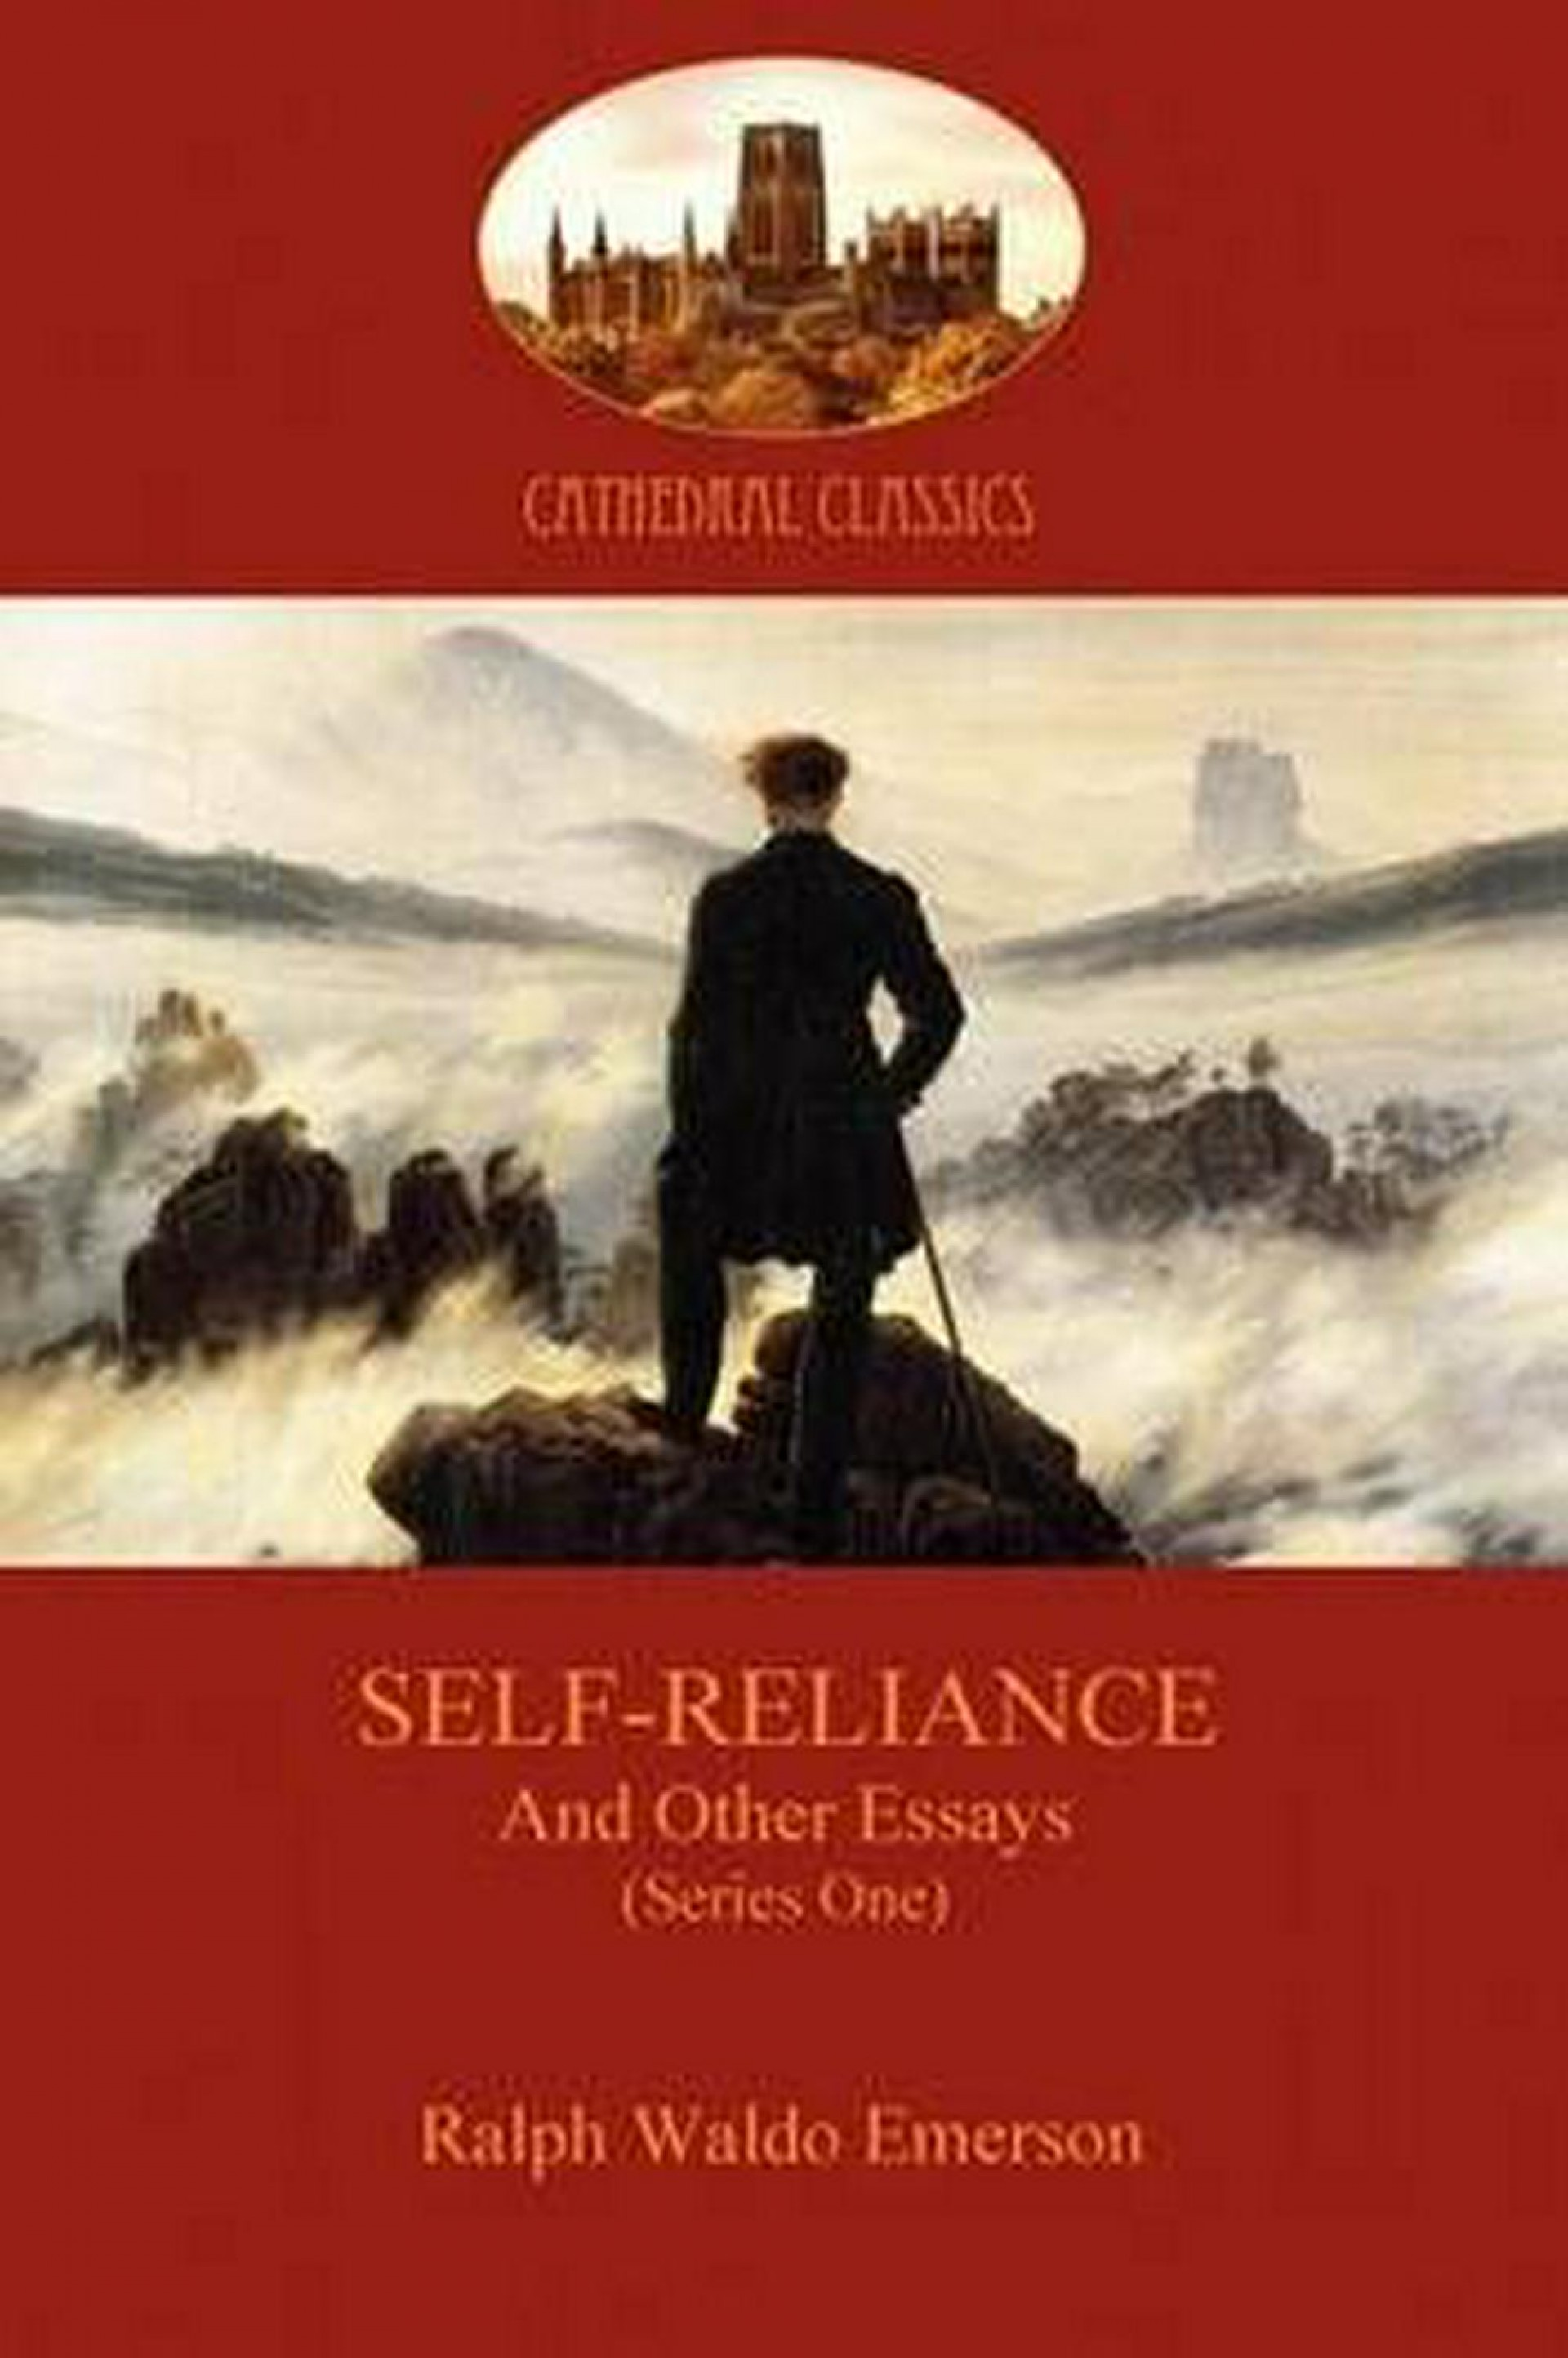 015 Essay Example Self Reliance And Other Essays Formidable Ekşi Self-reliance (dover Thrift Editions) Pdf Epub 1920